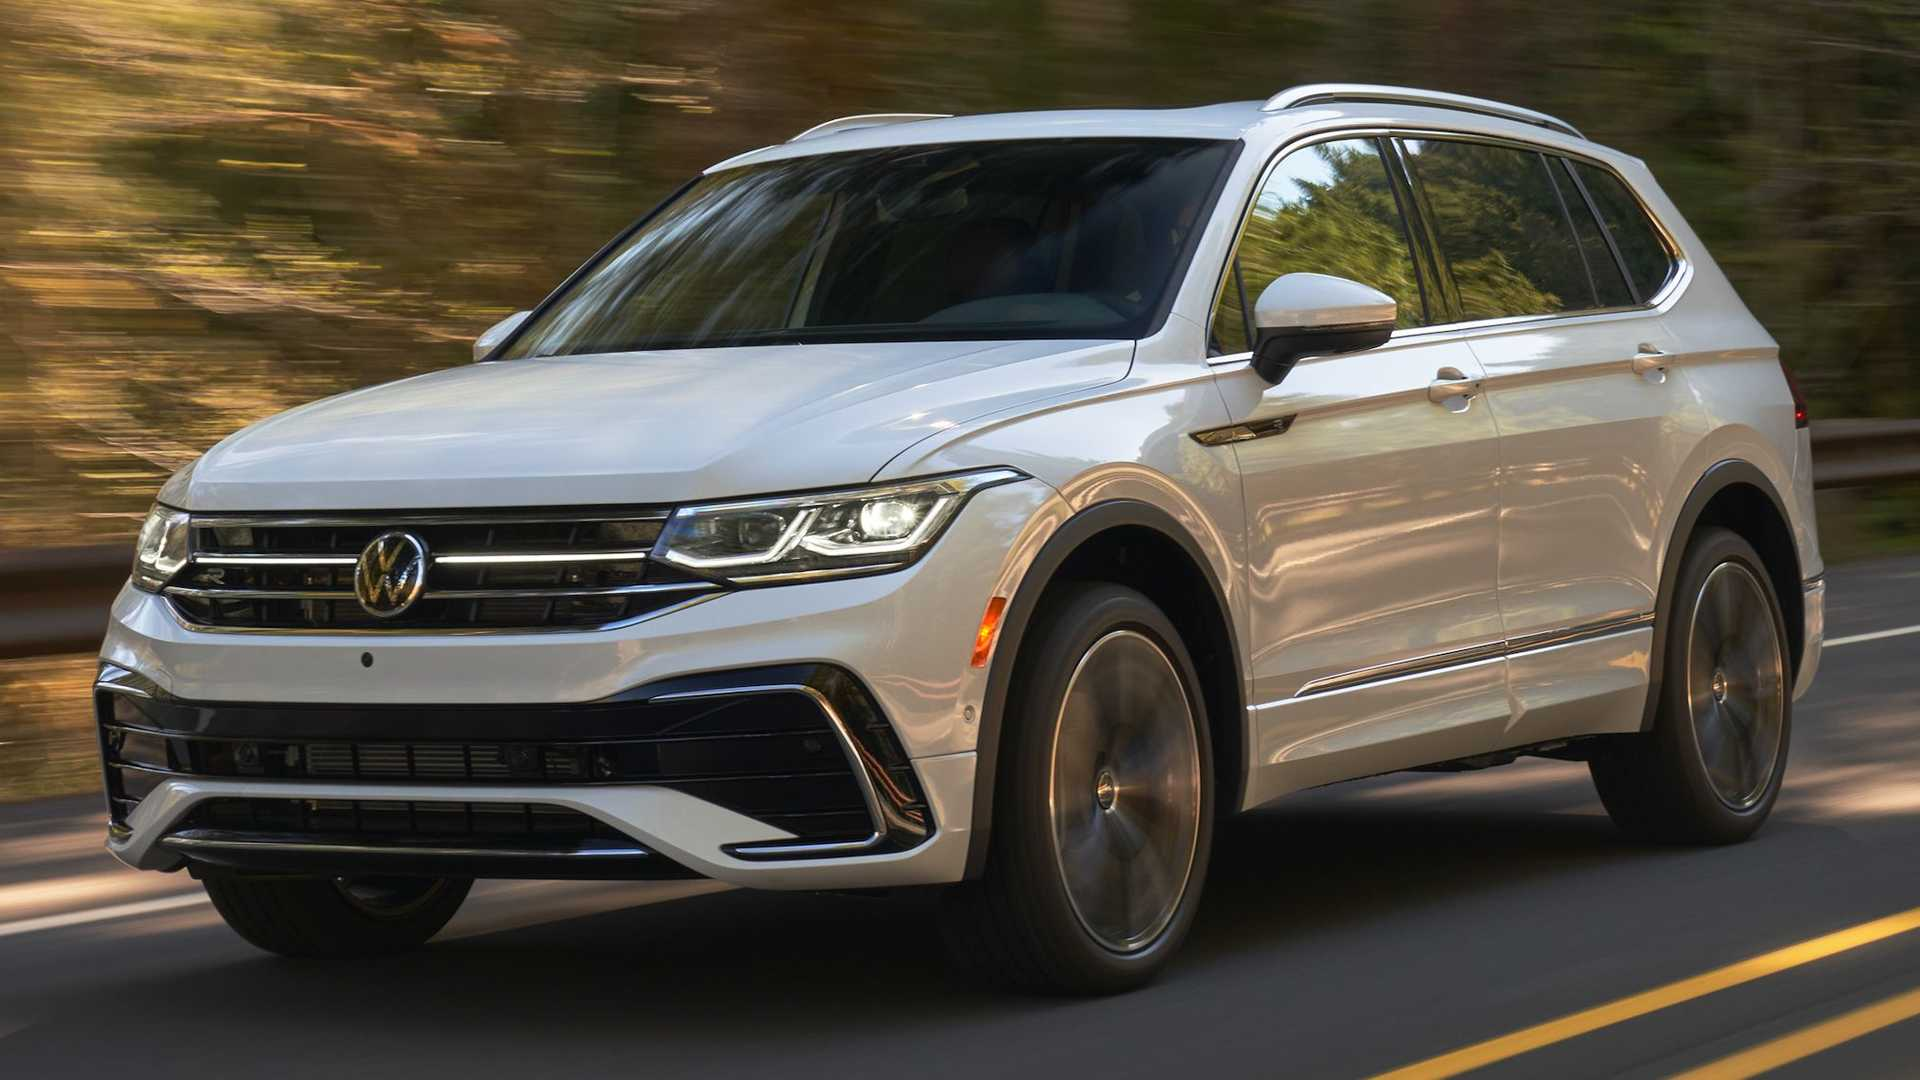 2022 VW Tiguan Debuts With Updated Exterior, Familiar Interior - Motor1